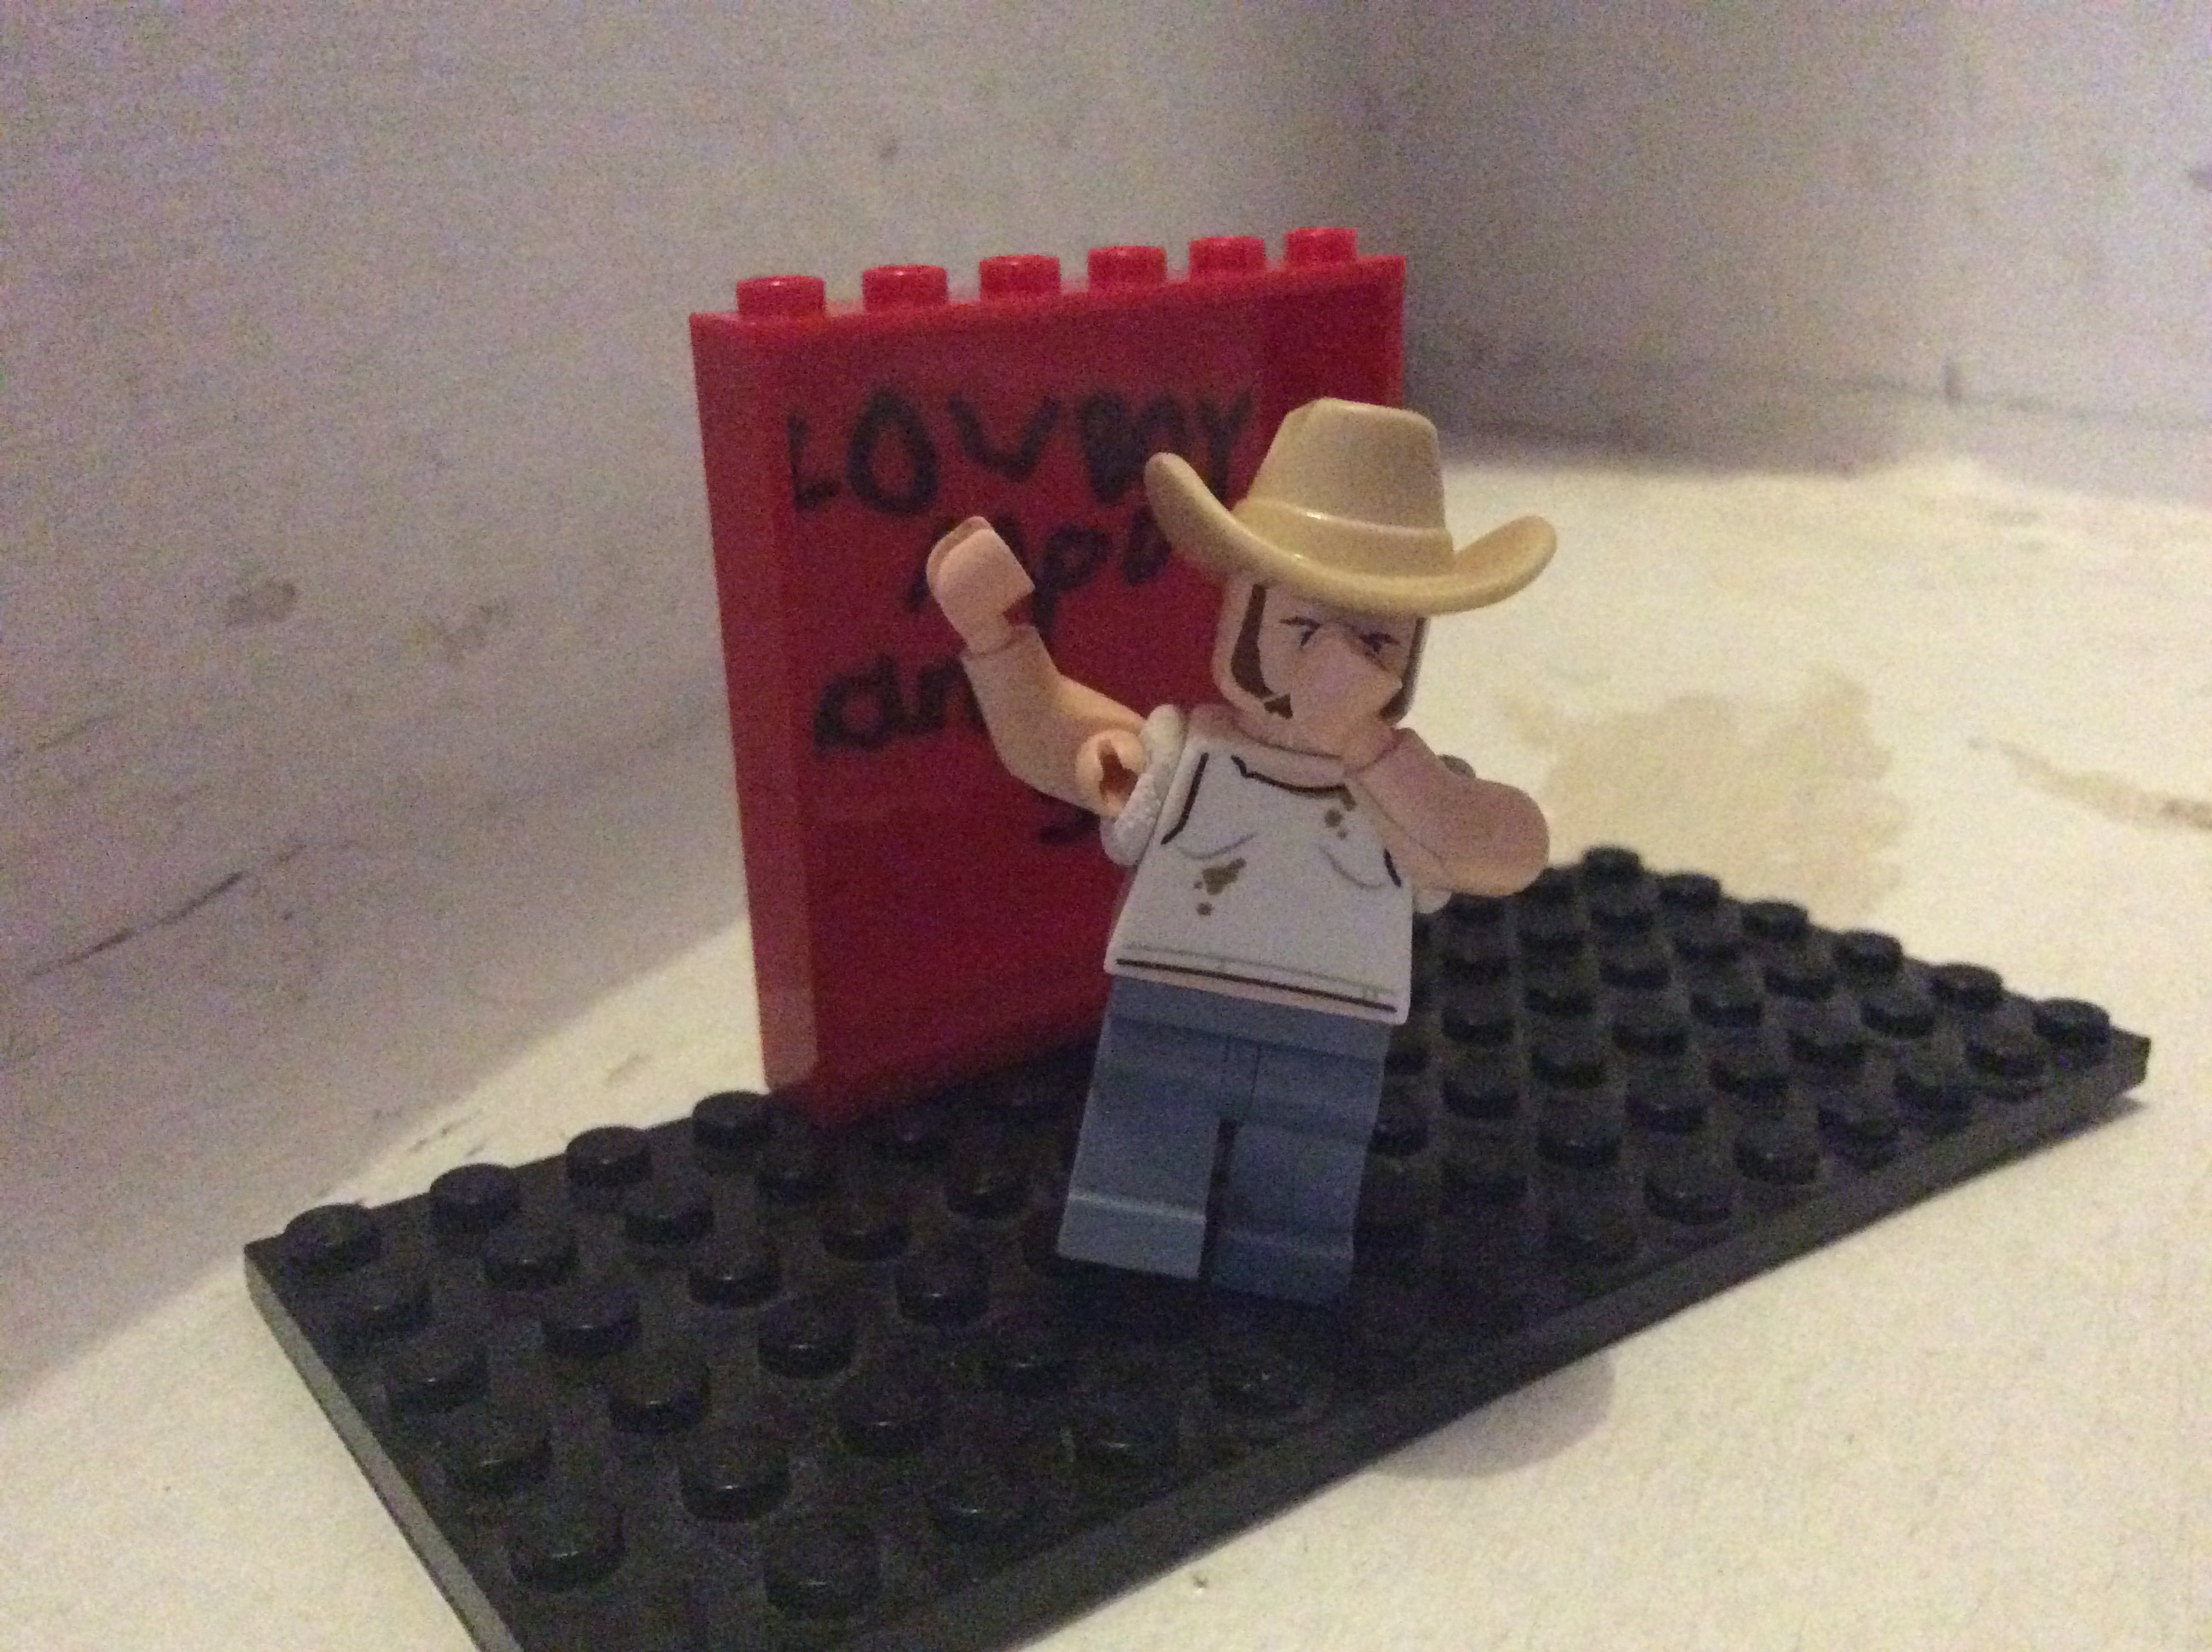 alfie makes me in lego doing the dab | cowboymod